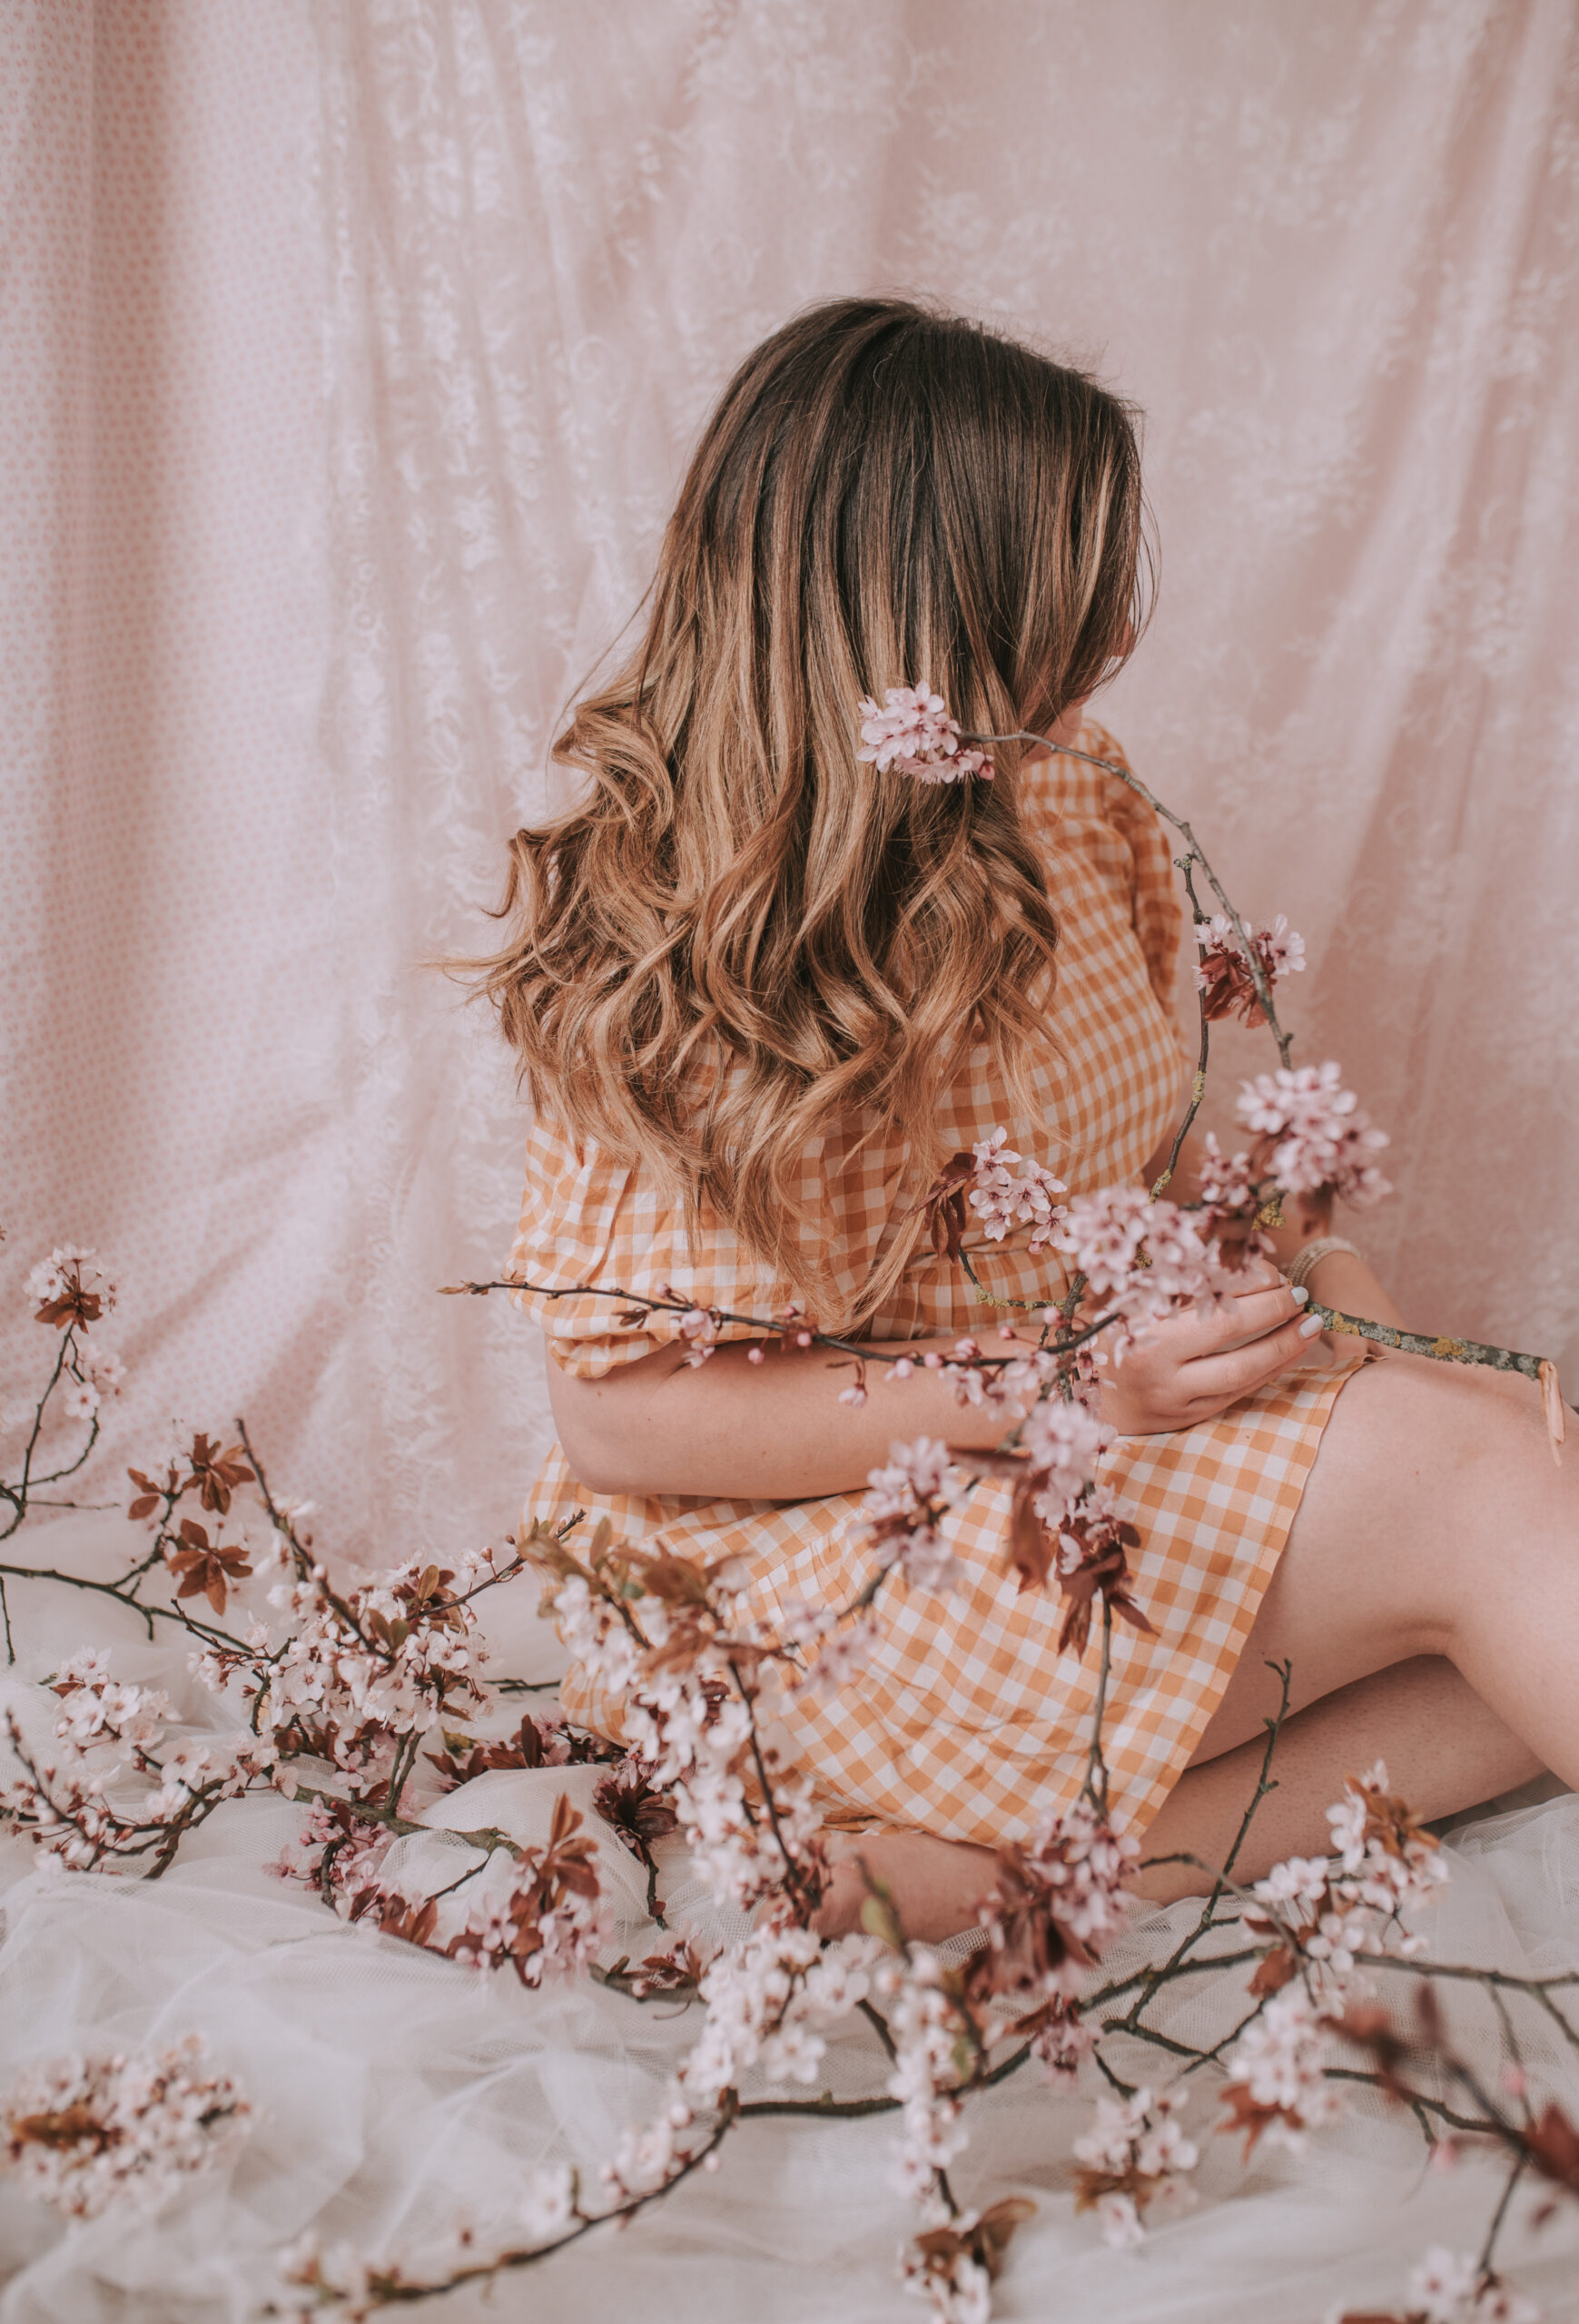 Spring Photography Blossom Bedsheet Chiffon Photoshoot At Home